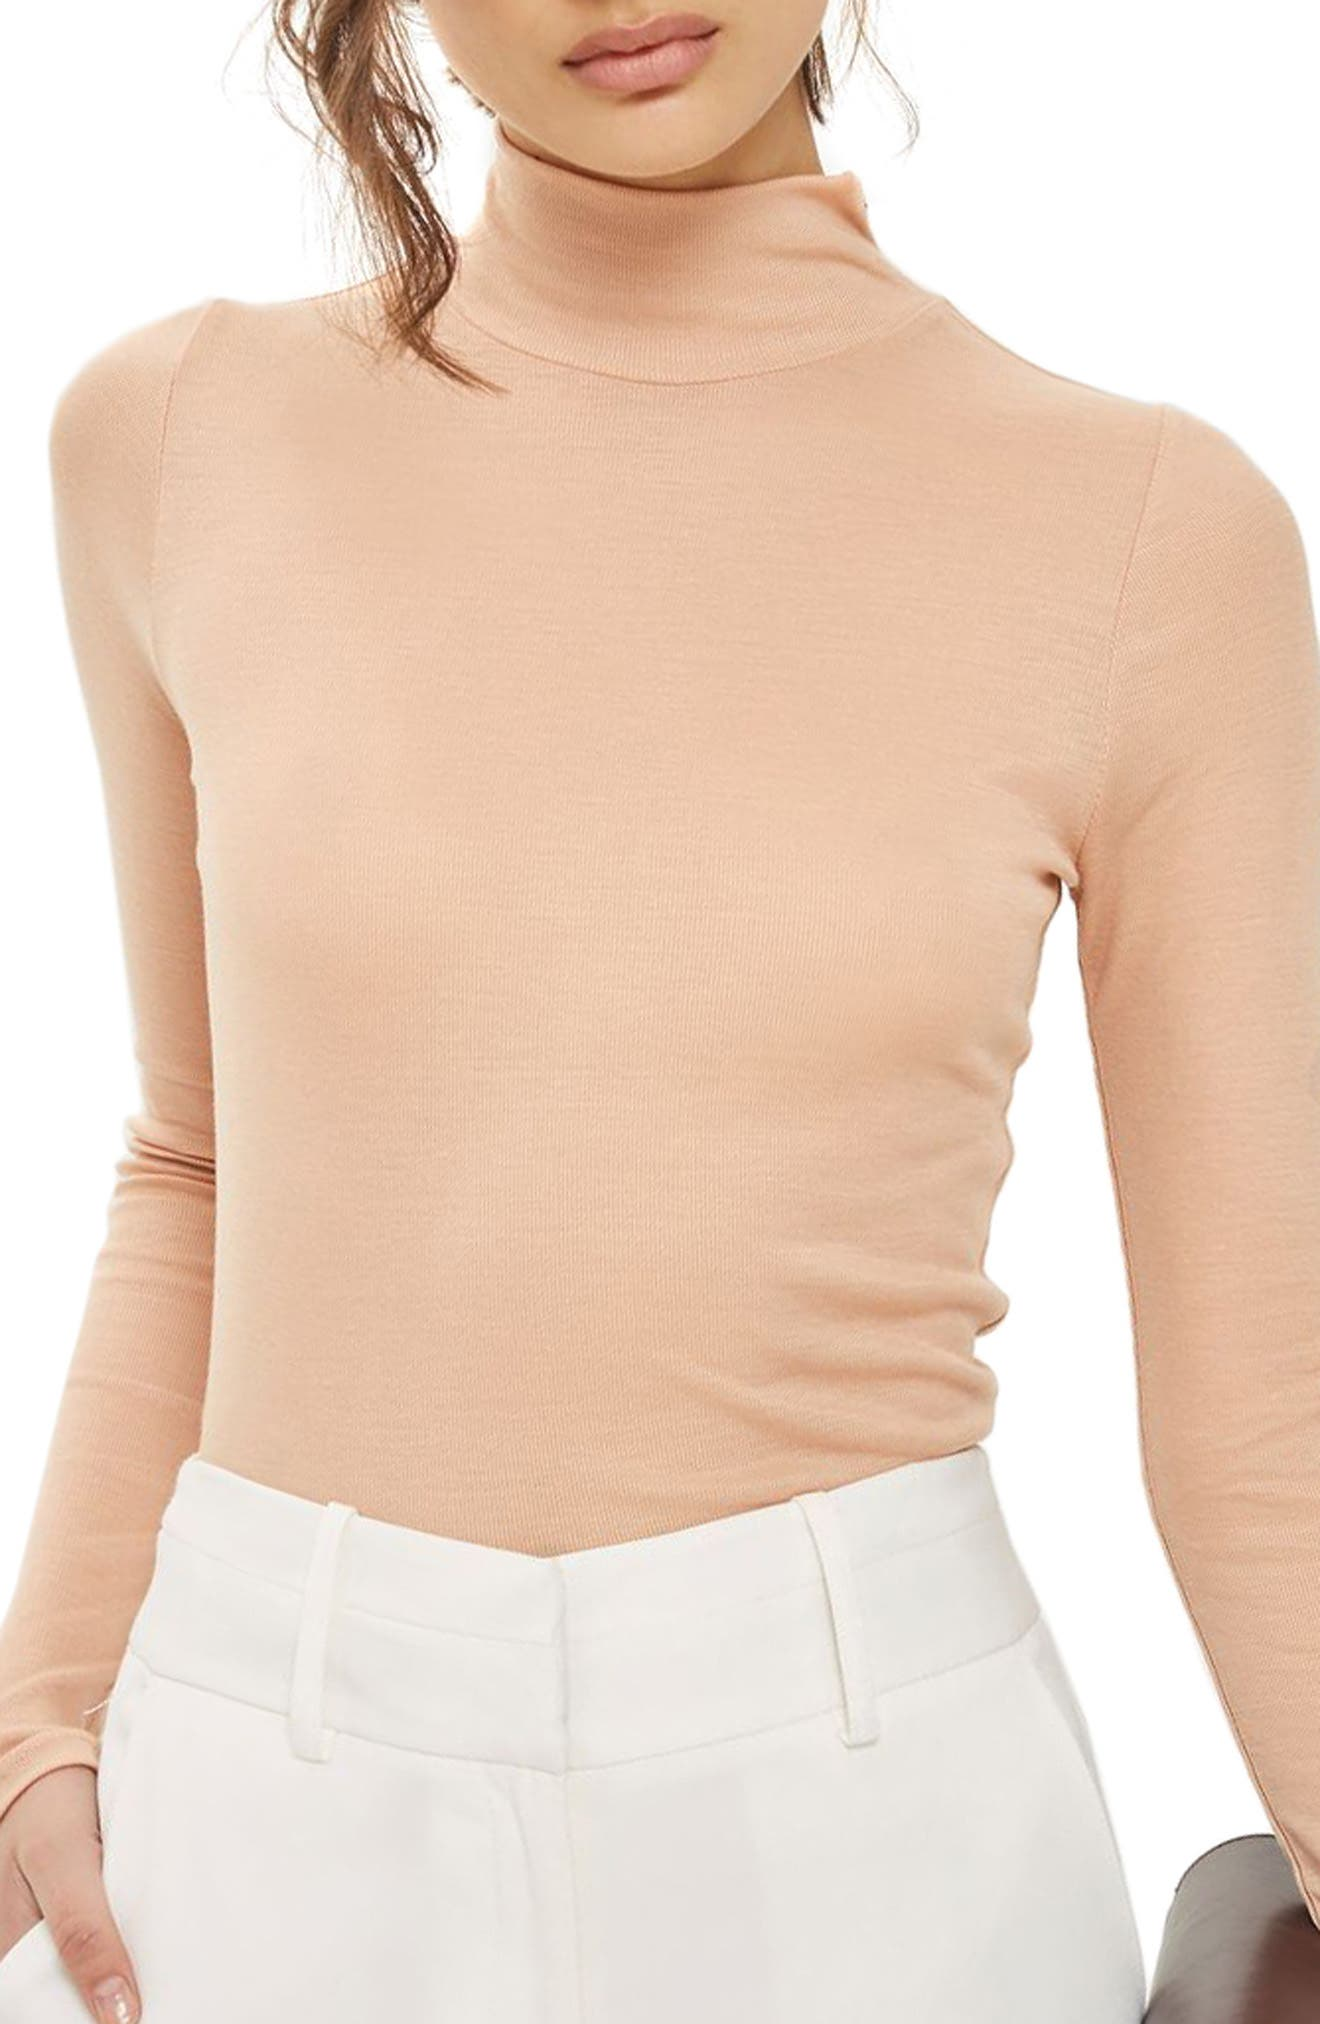 Alternate Image 1 Selected - Topshop Ribbed Turtleneck Top